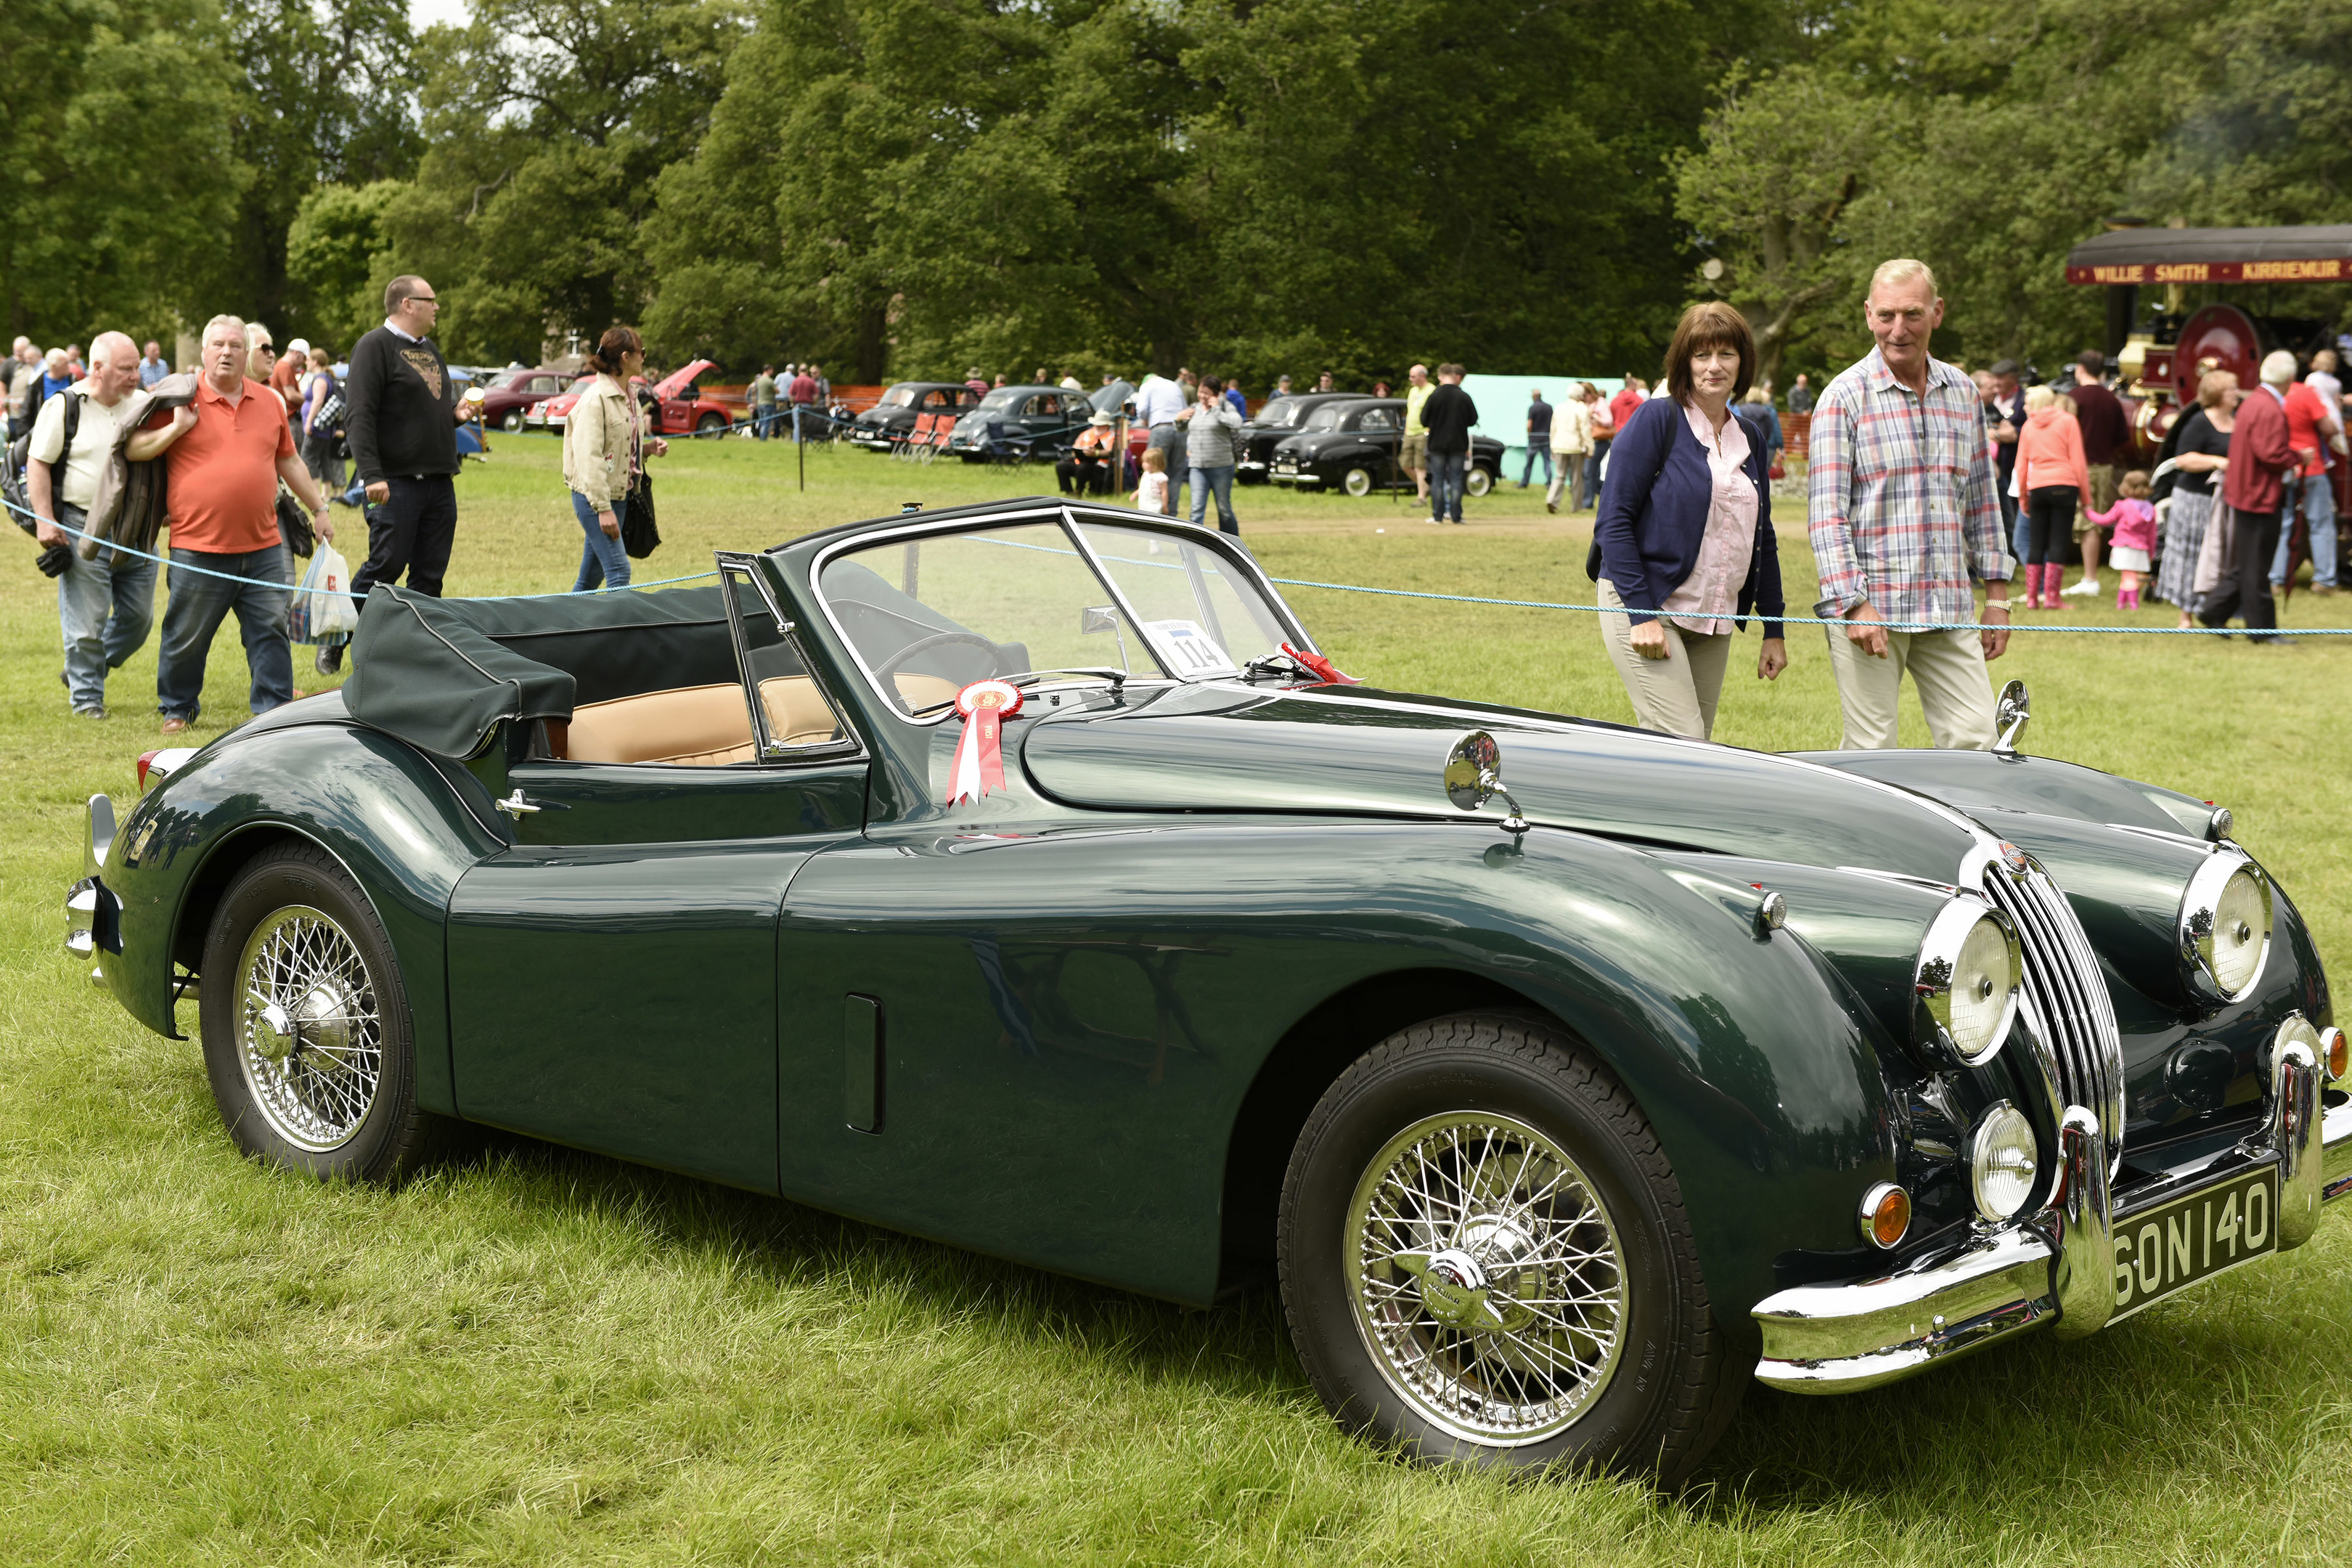 The extravaganza attracts an array of classic and vintage vehicles.